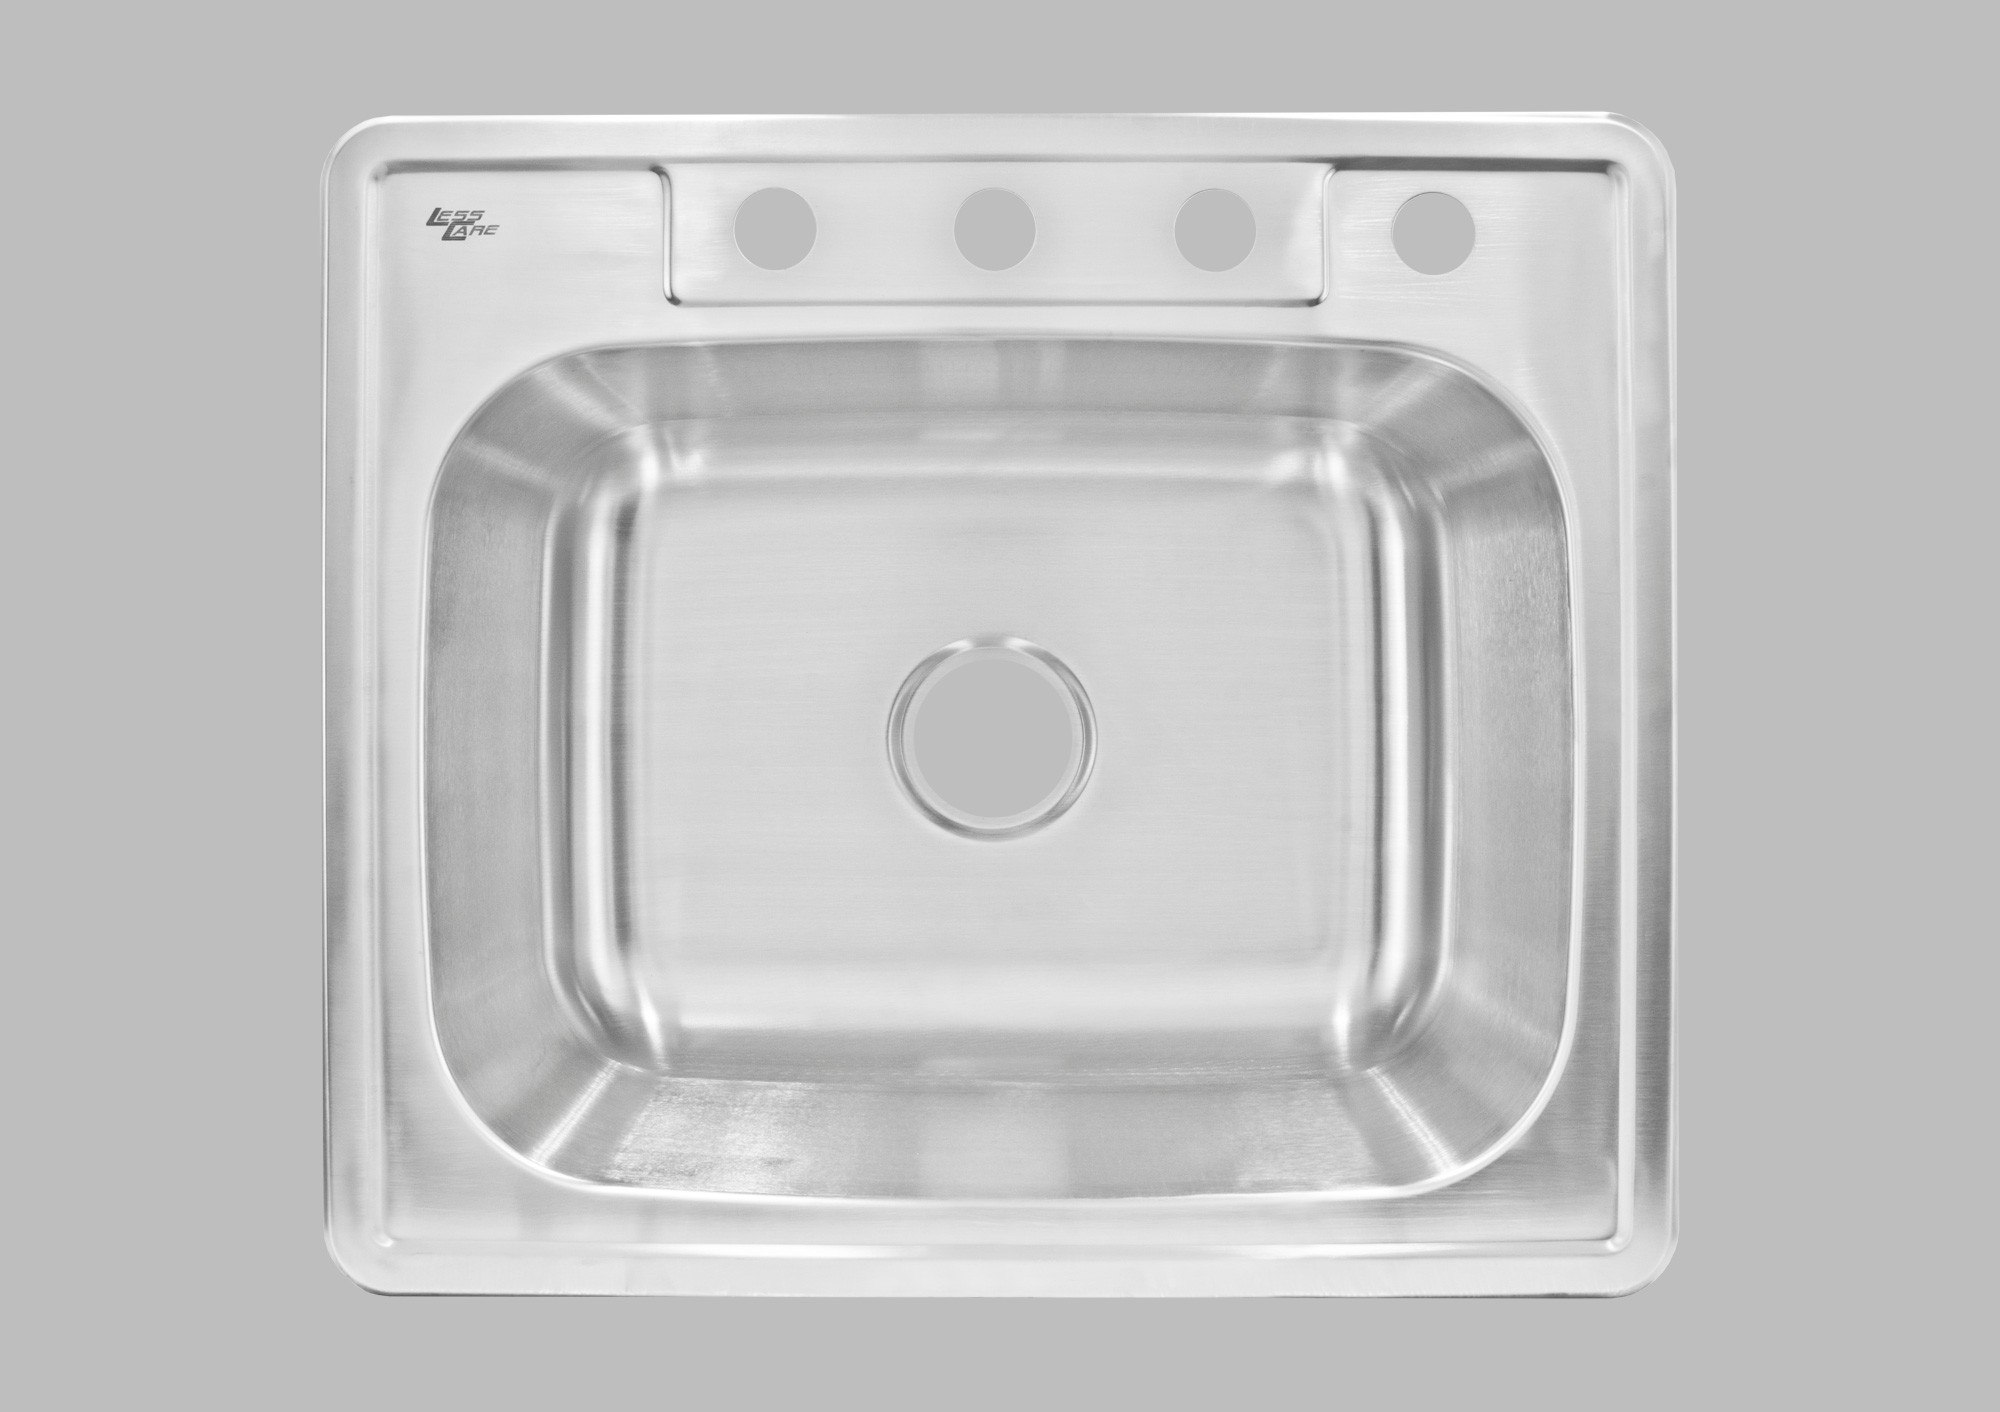 LESS CARE LT64 25 INCH KITCHEN AND BAR TOP MOUNT SINK